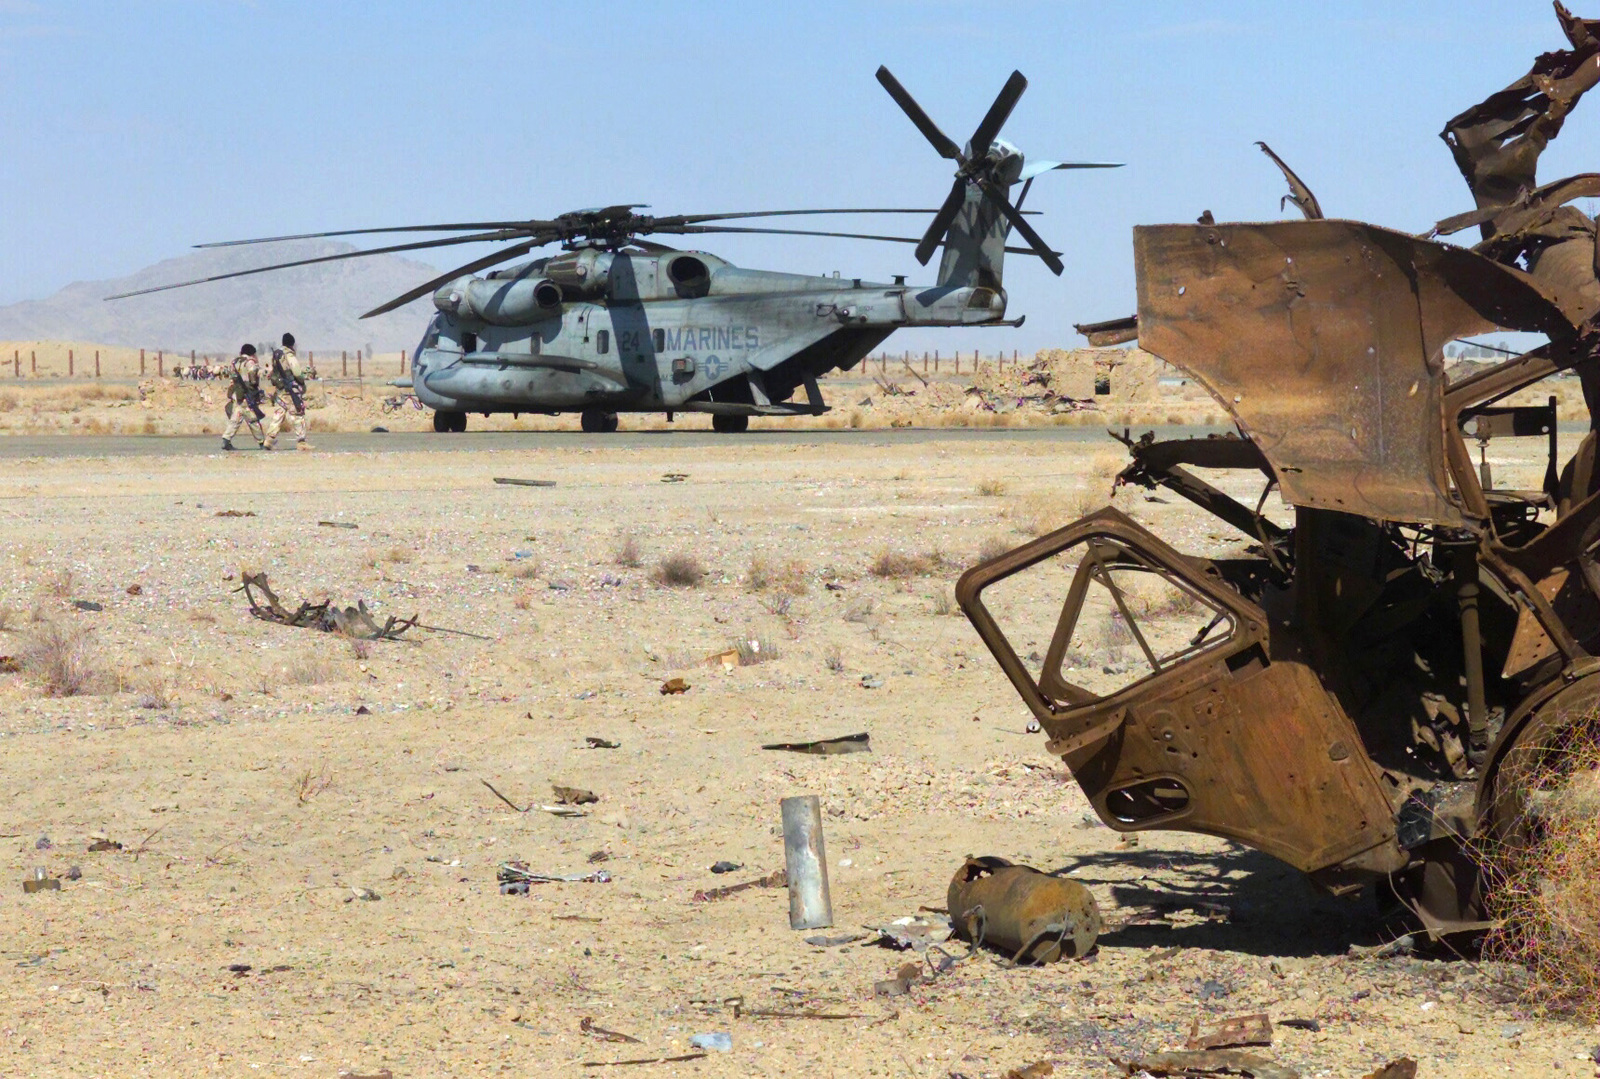 Two Marines walk along the runway toward a Marine CH-53 Sea Stallion helicopter with Marine Medium Helicopter -365 (HMM-365) (Reinforced) located at Khandahar International Airport, Khandahar, Afghanistan during OPERATION ENDURING FREEDOM. Just off the runway sits a large collection of destroyed Soviet equipment